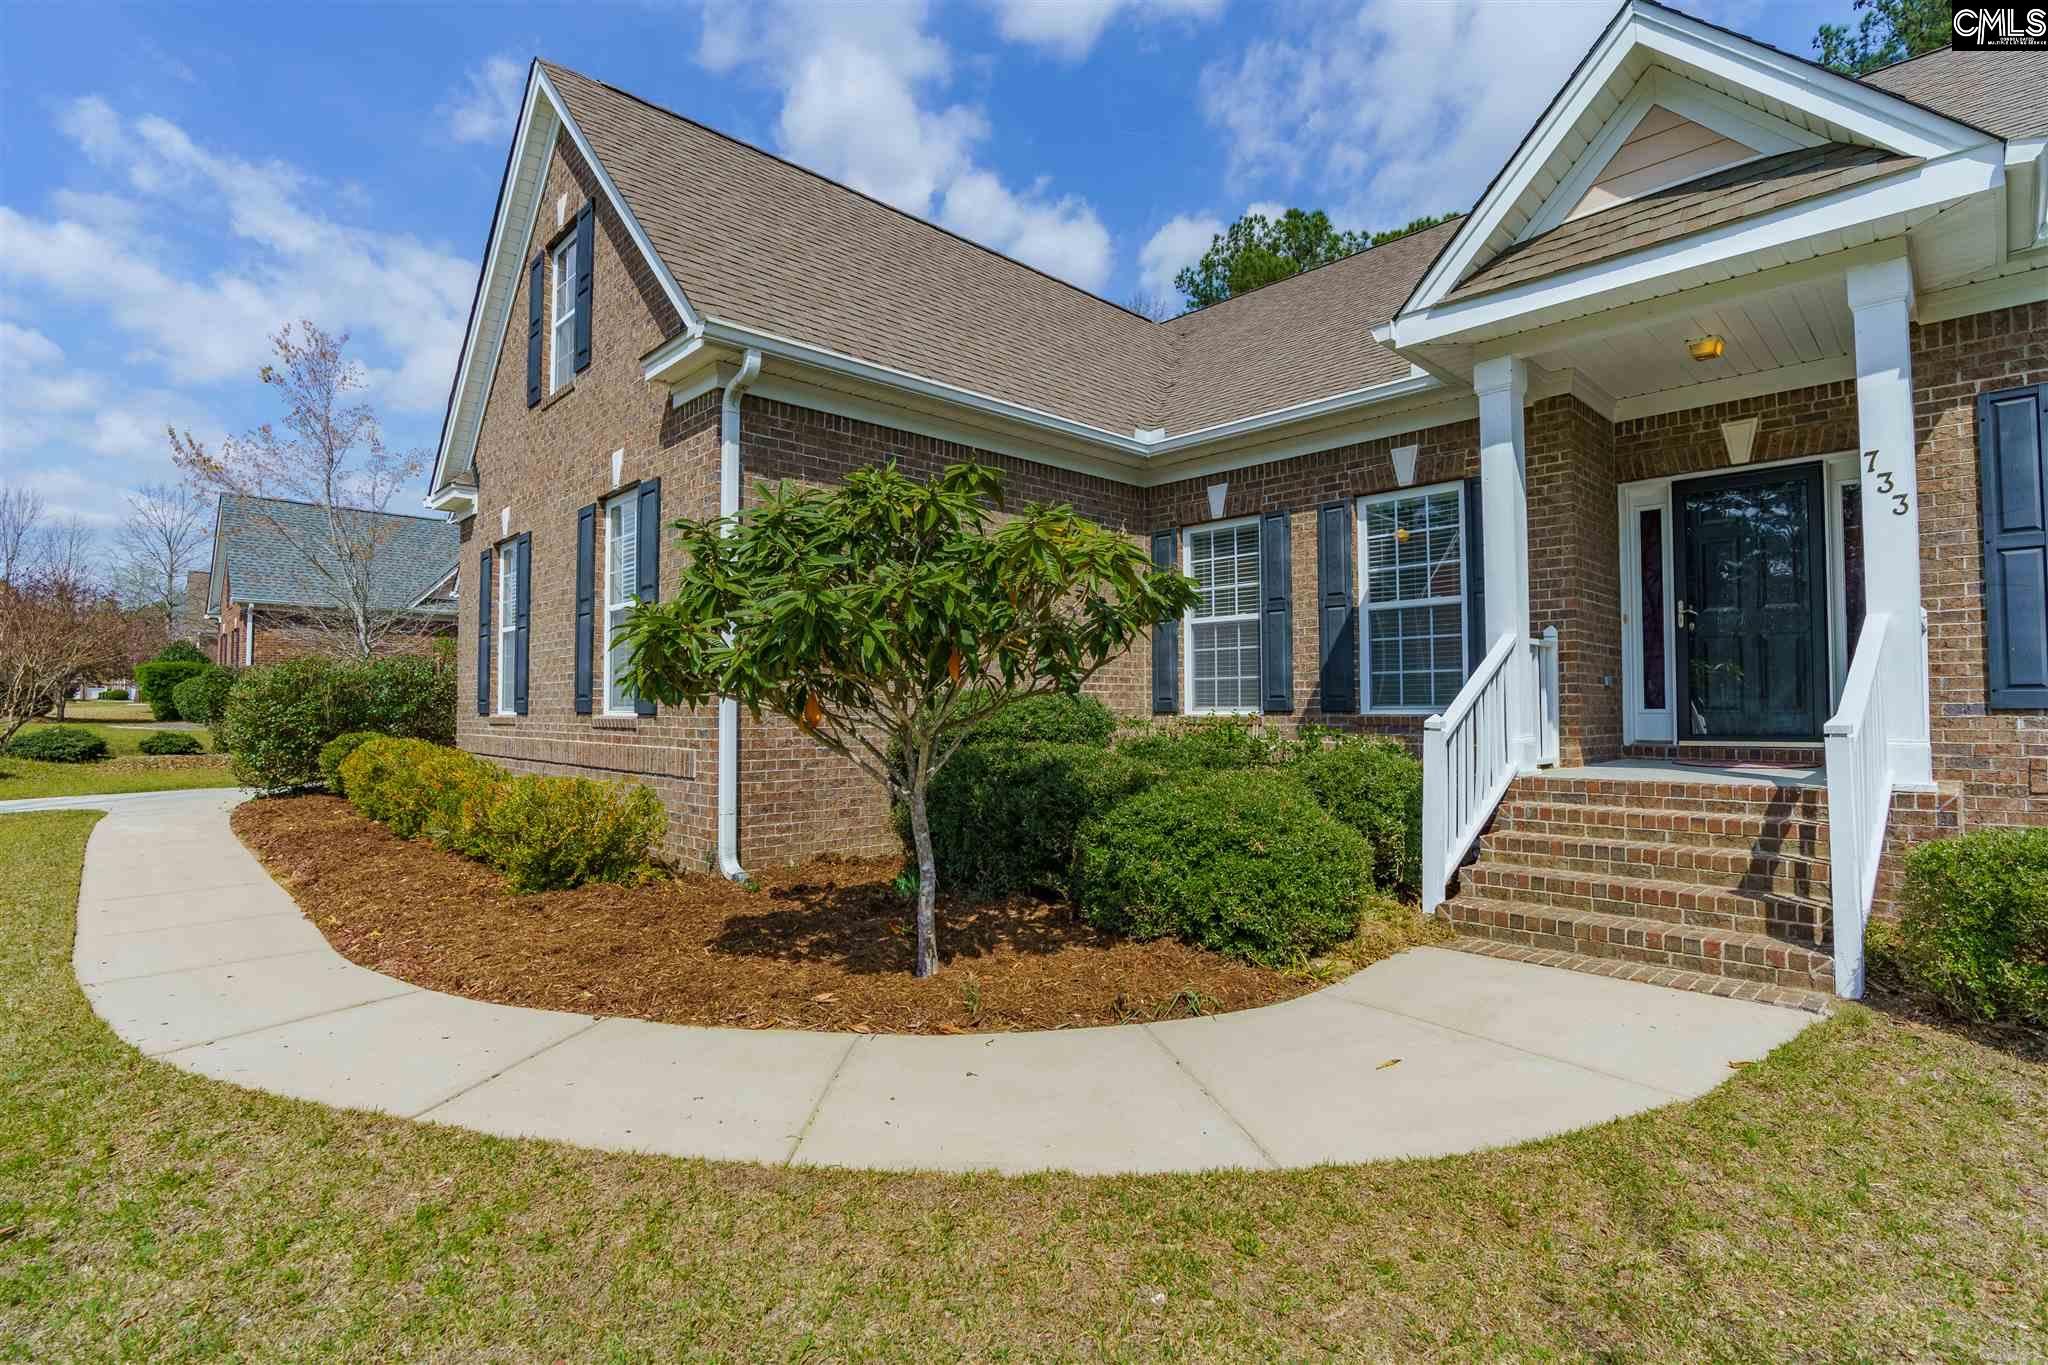 733 Harbor Vista Columbia, SC 29229-7438